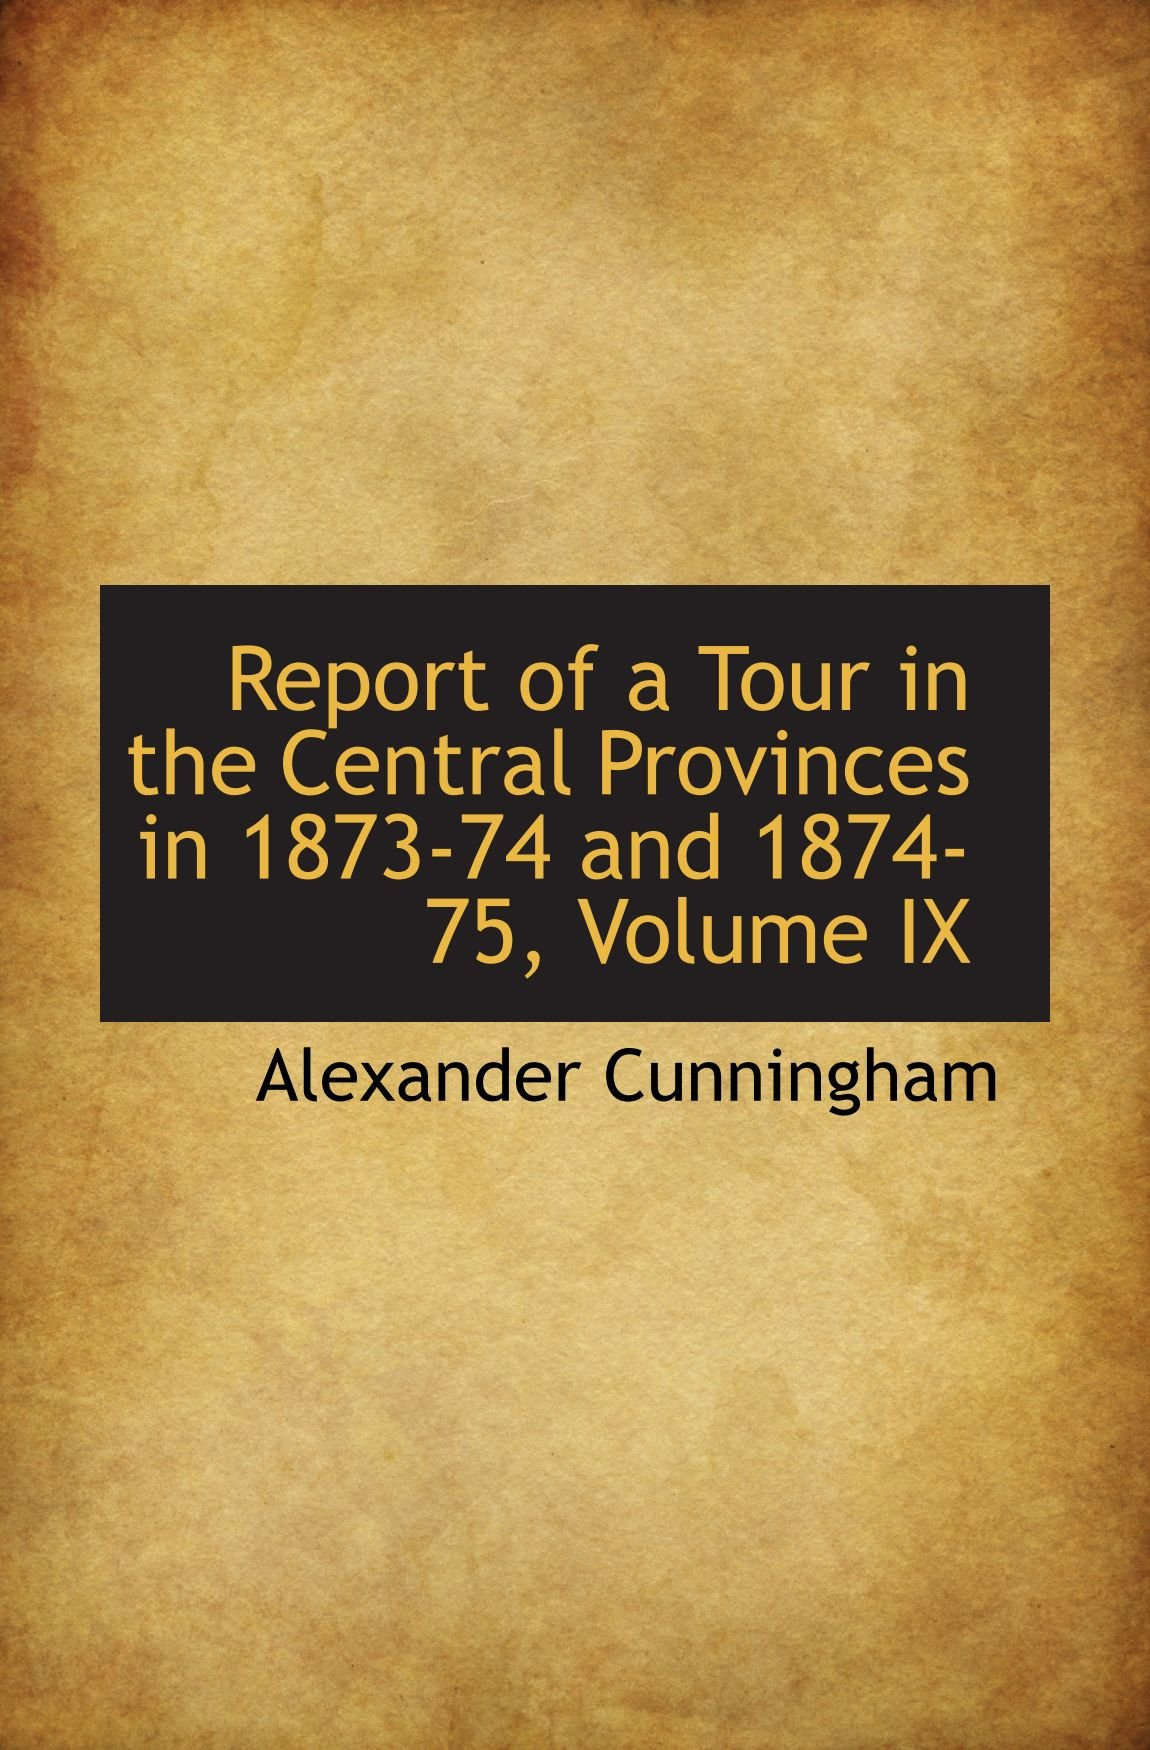 Download Report of a Tour in the Central Provinces in 1873-74 and 1874-75, Volume IX PDF